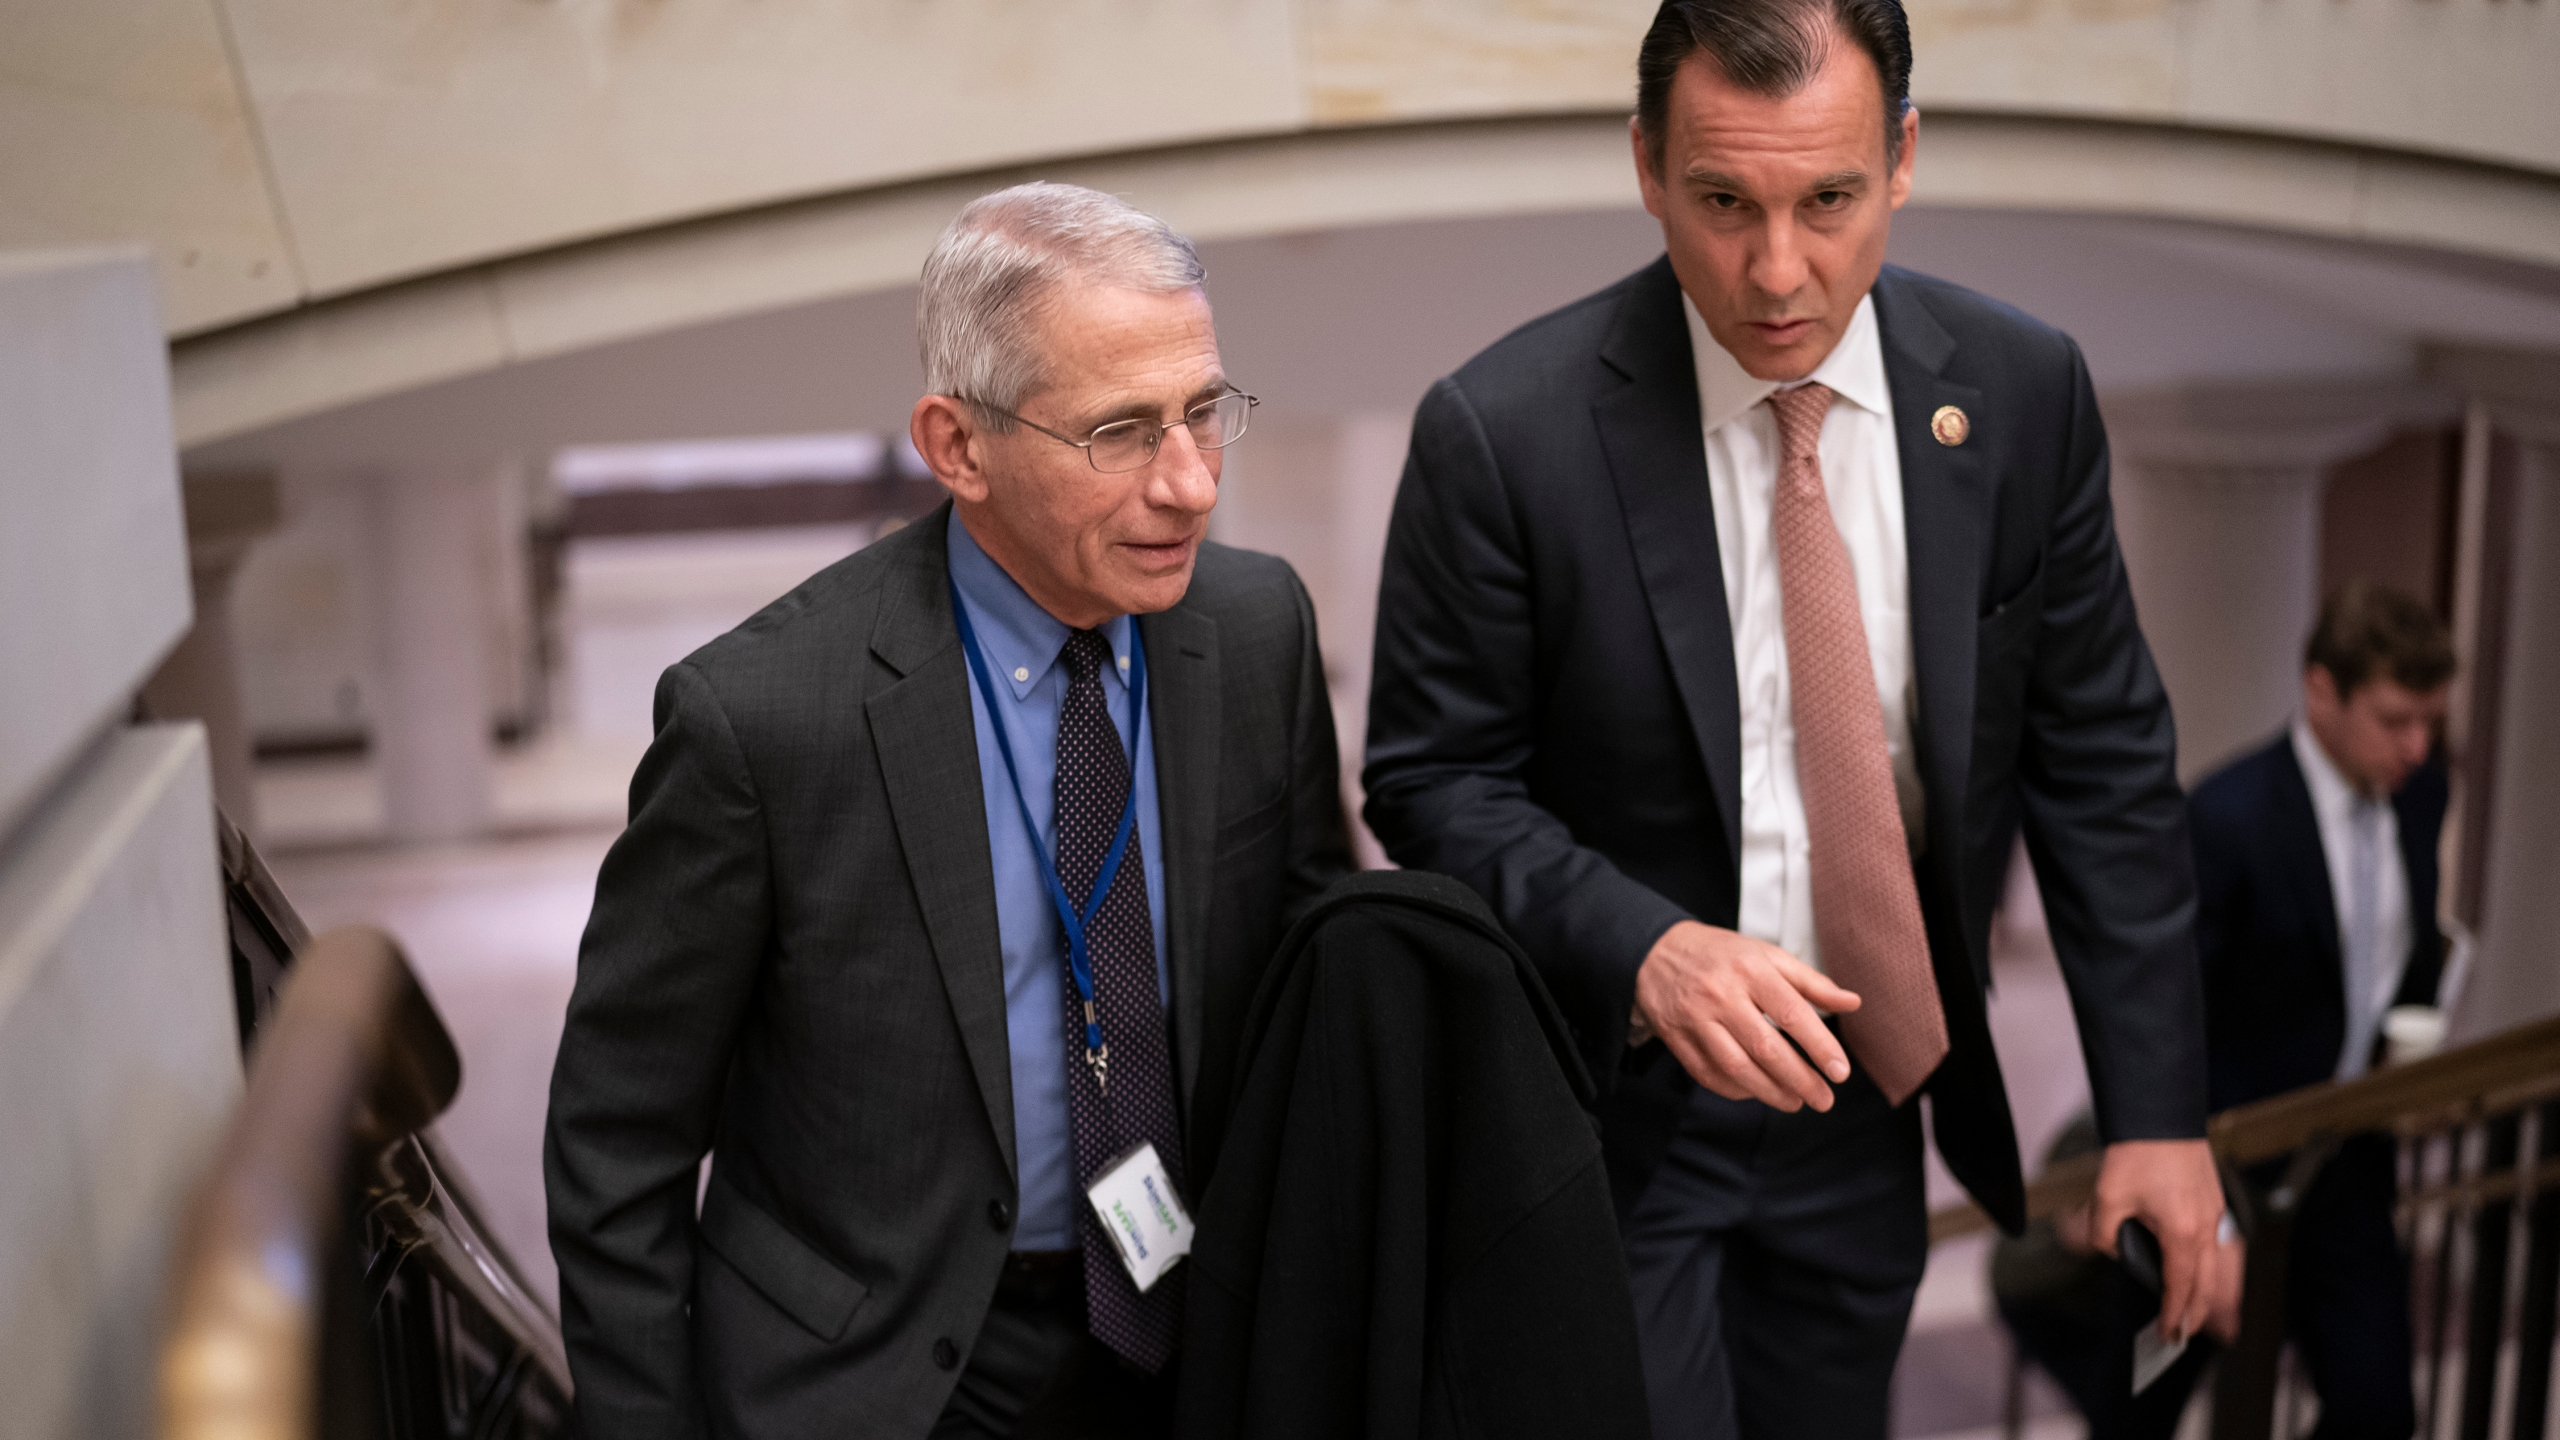 Anthony Fauci, Tom Suozzi